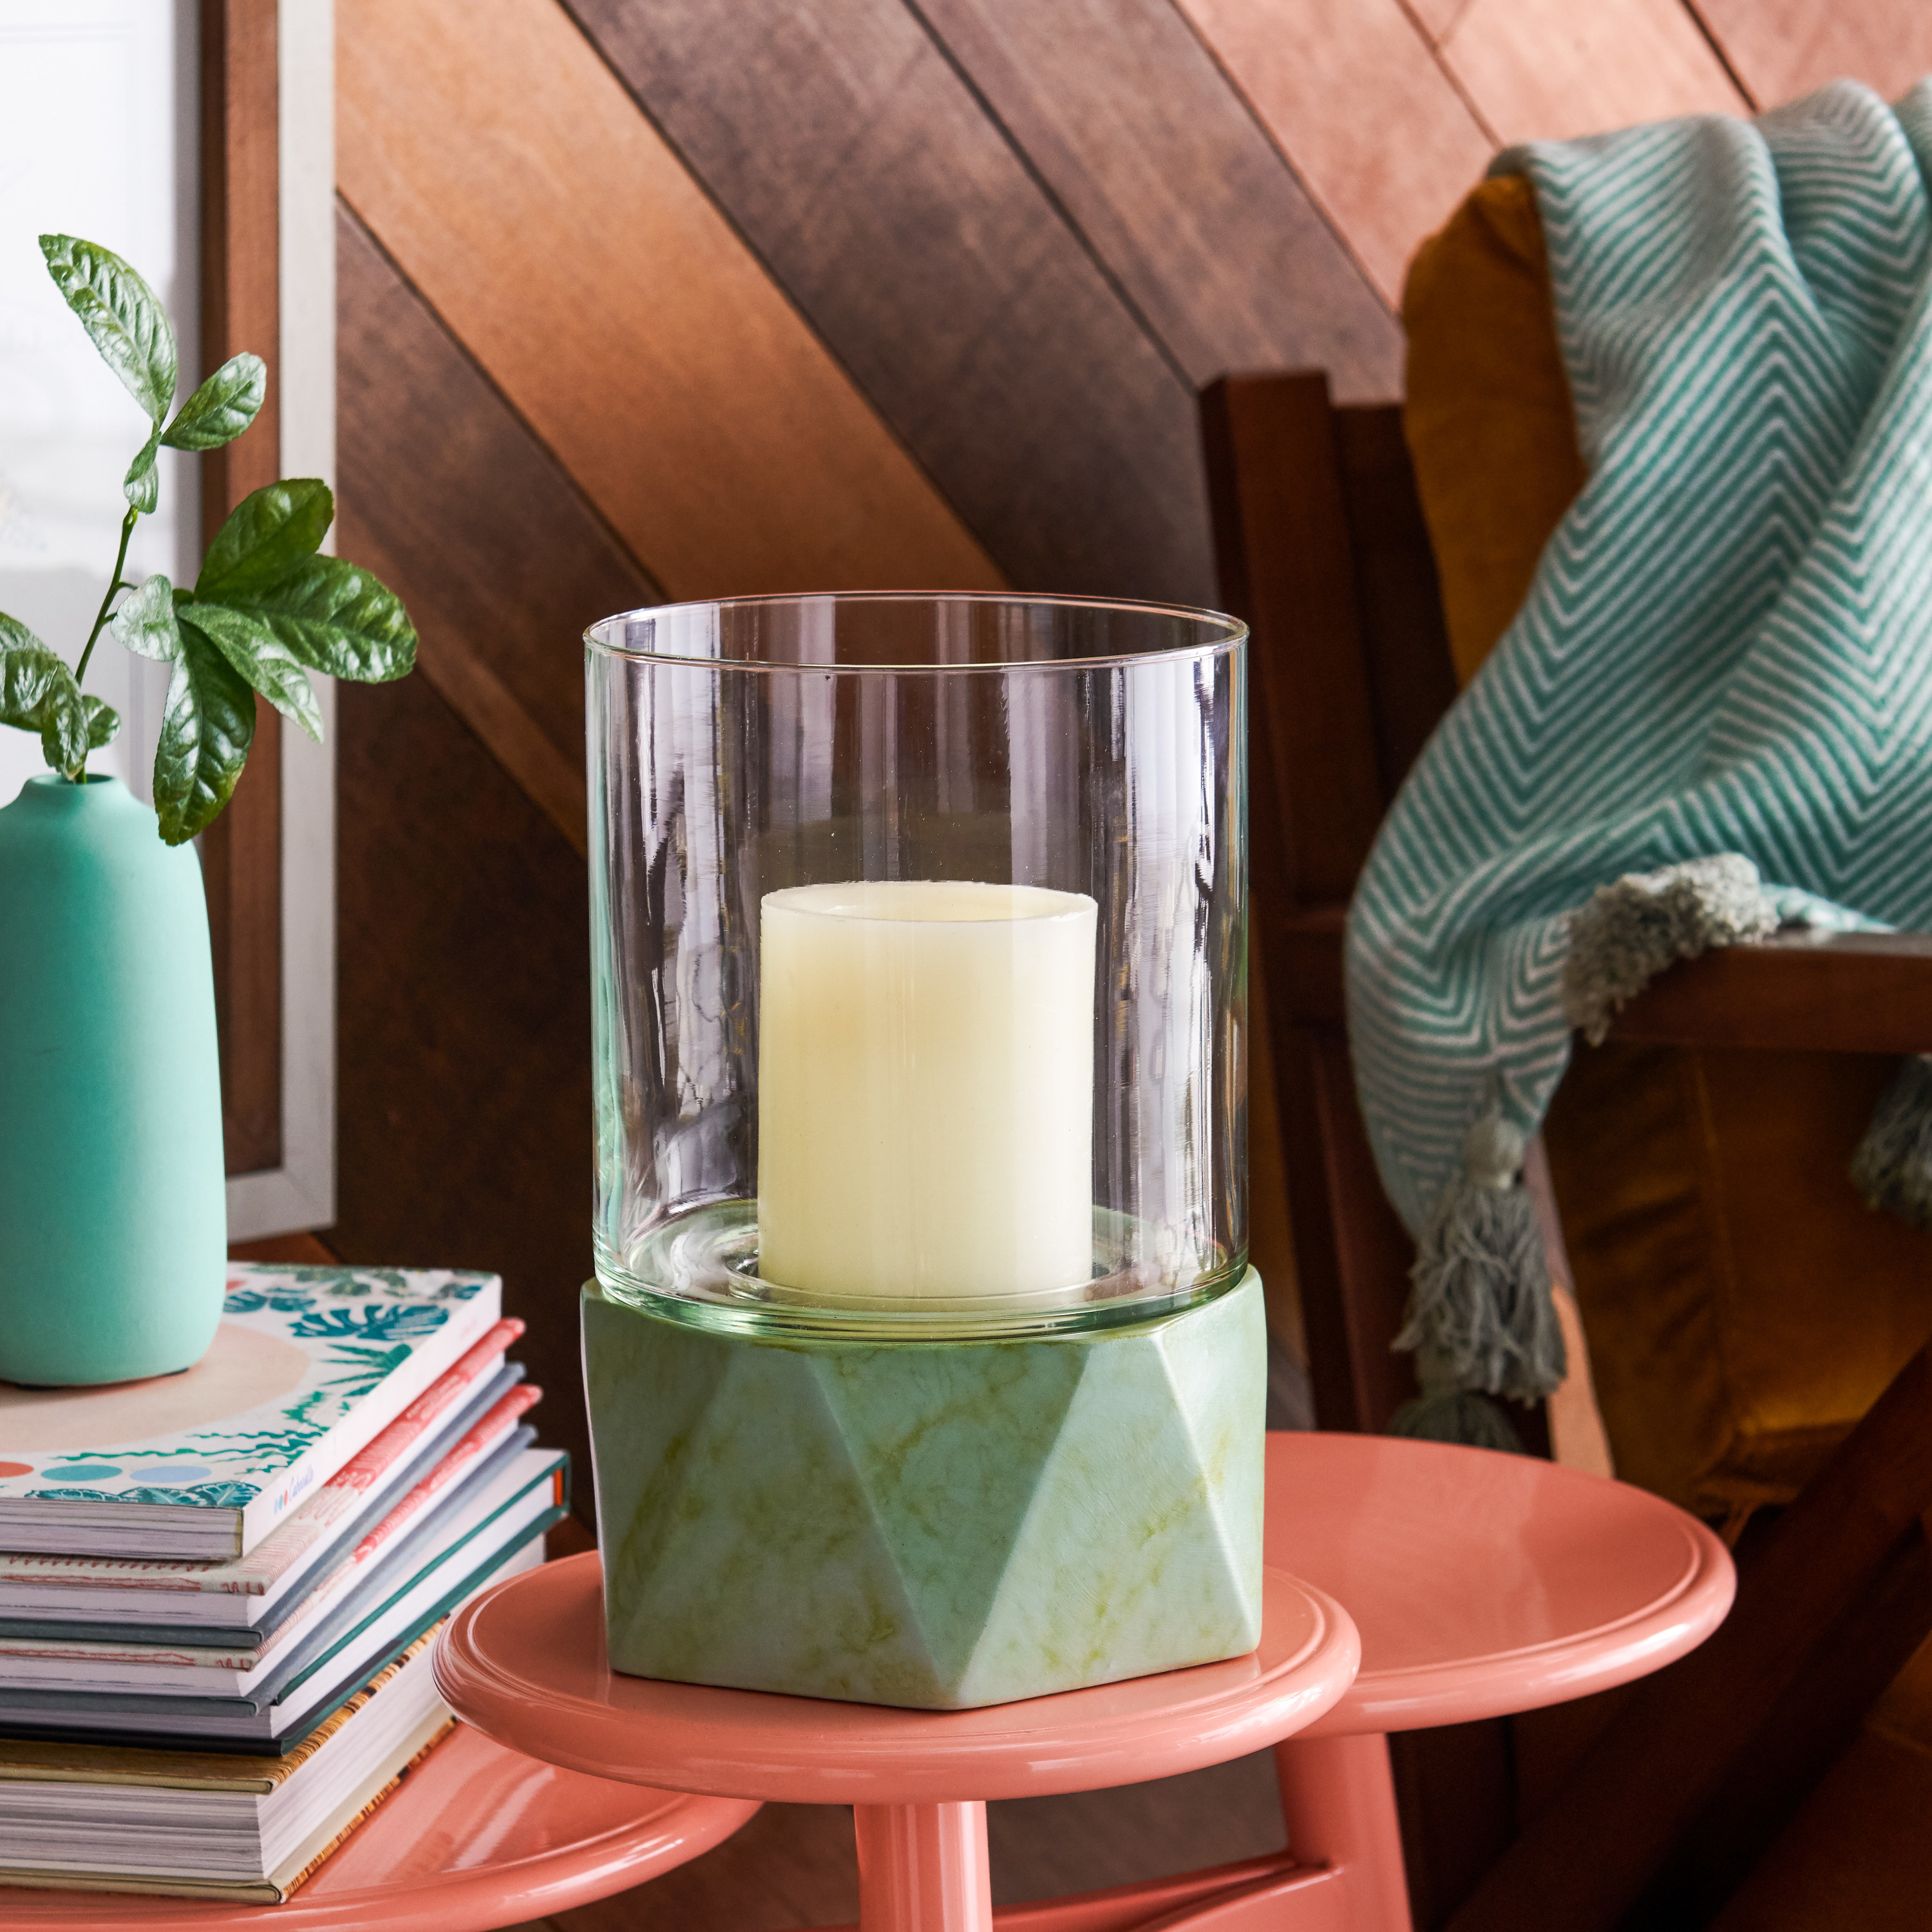 The ceramic and glass candle holder